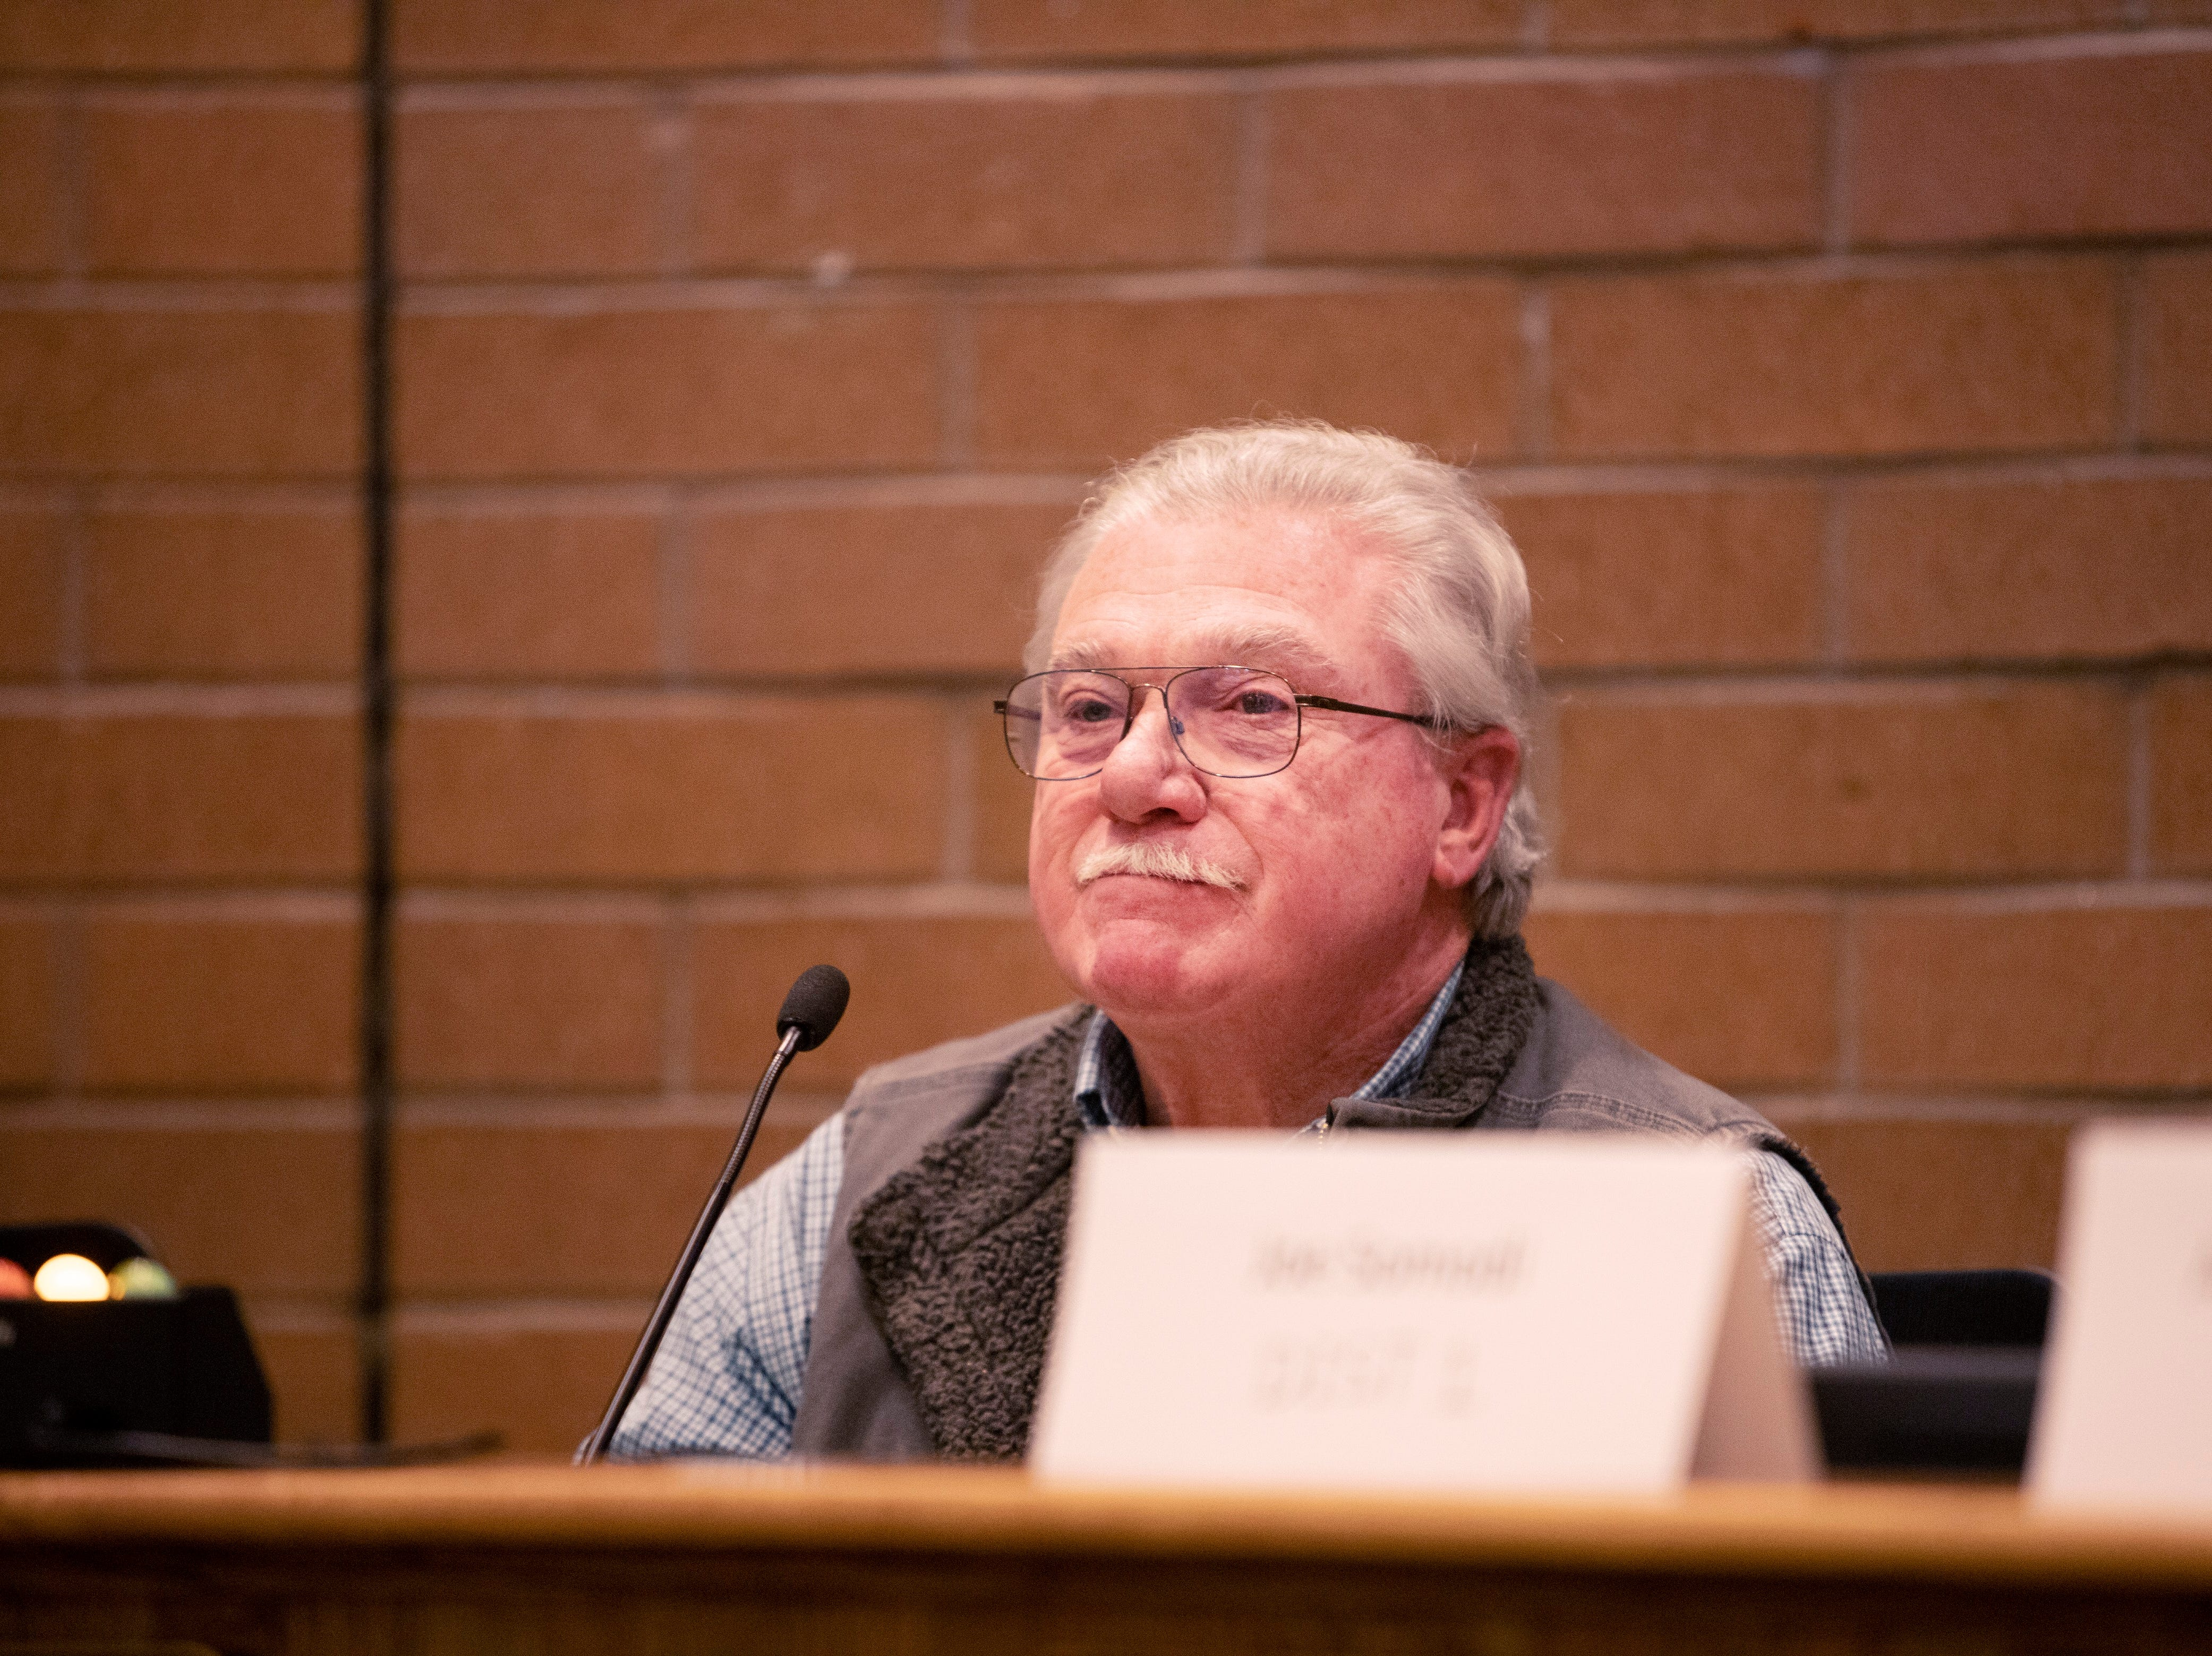 City Council candidate Glenn Haas participates in the candidate forum hosted by The League of  Women Voters of Larimer County at City Hall on March 6.